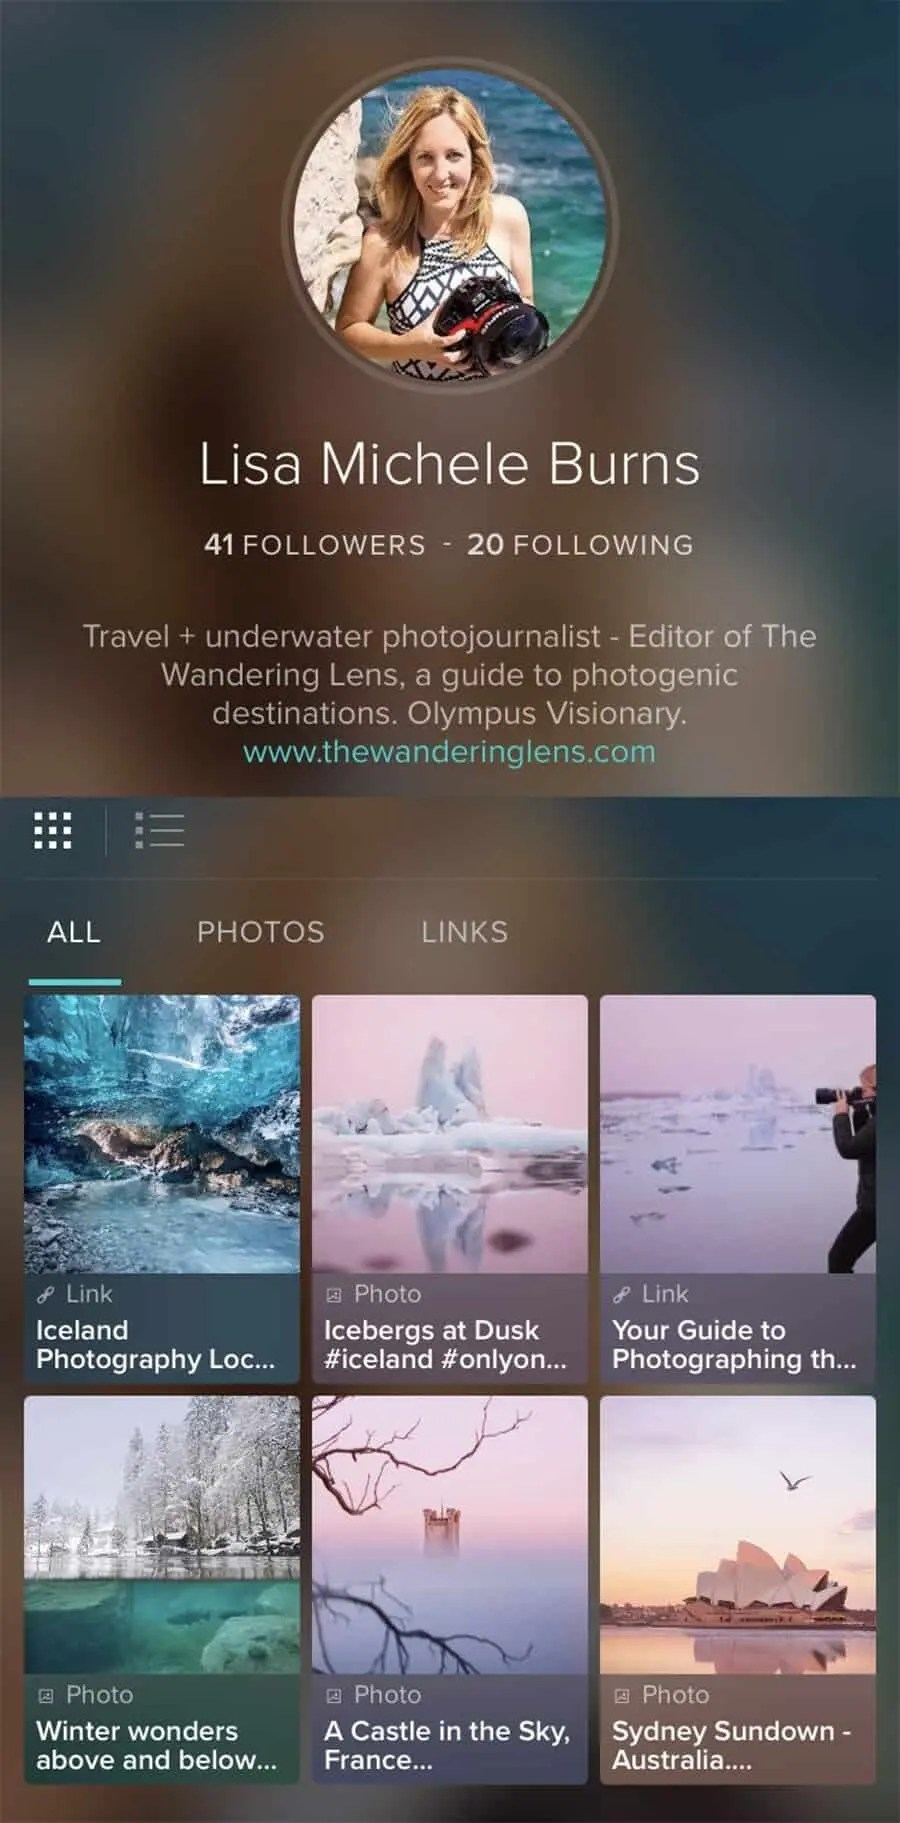 Social Media for Photographers - The best apps by Lisa Michele Burns of The Wandering Lens